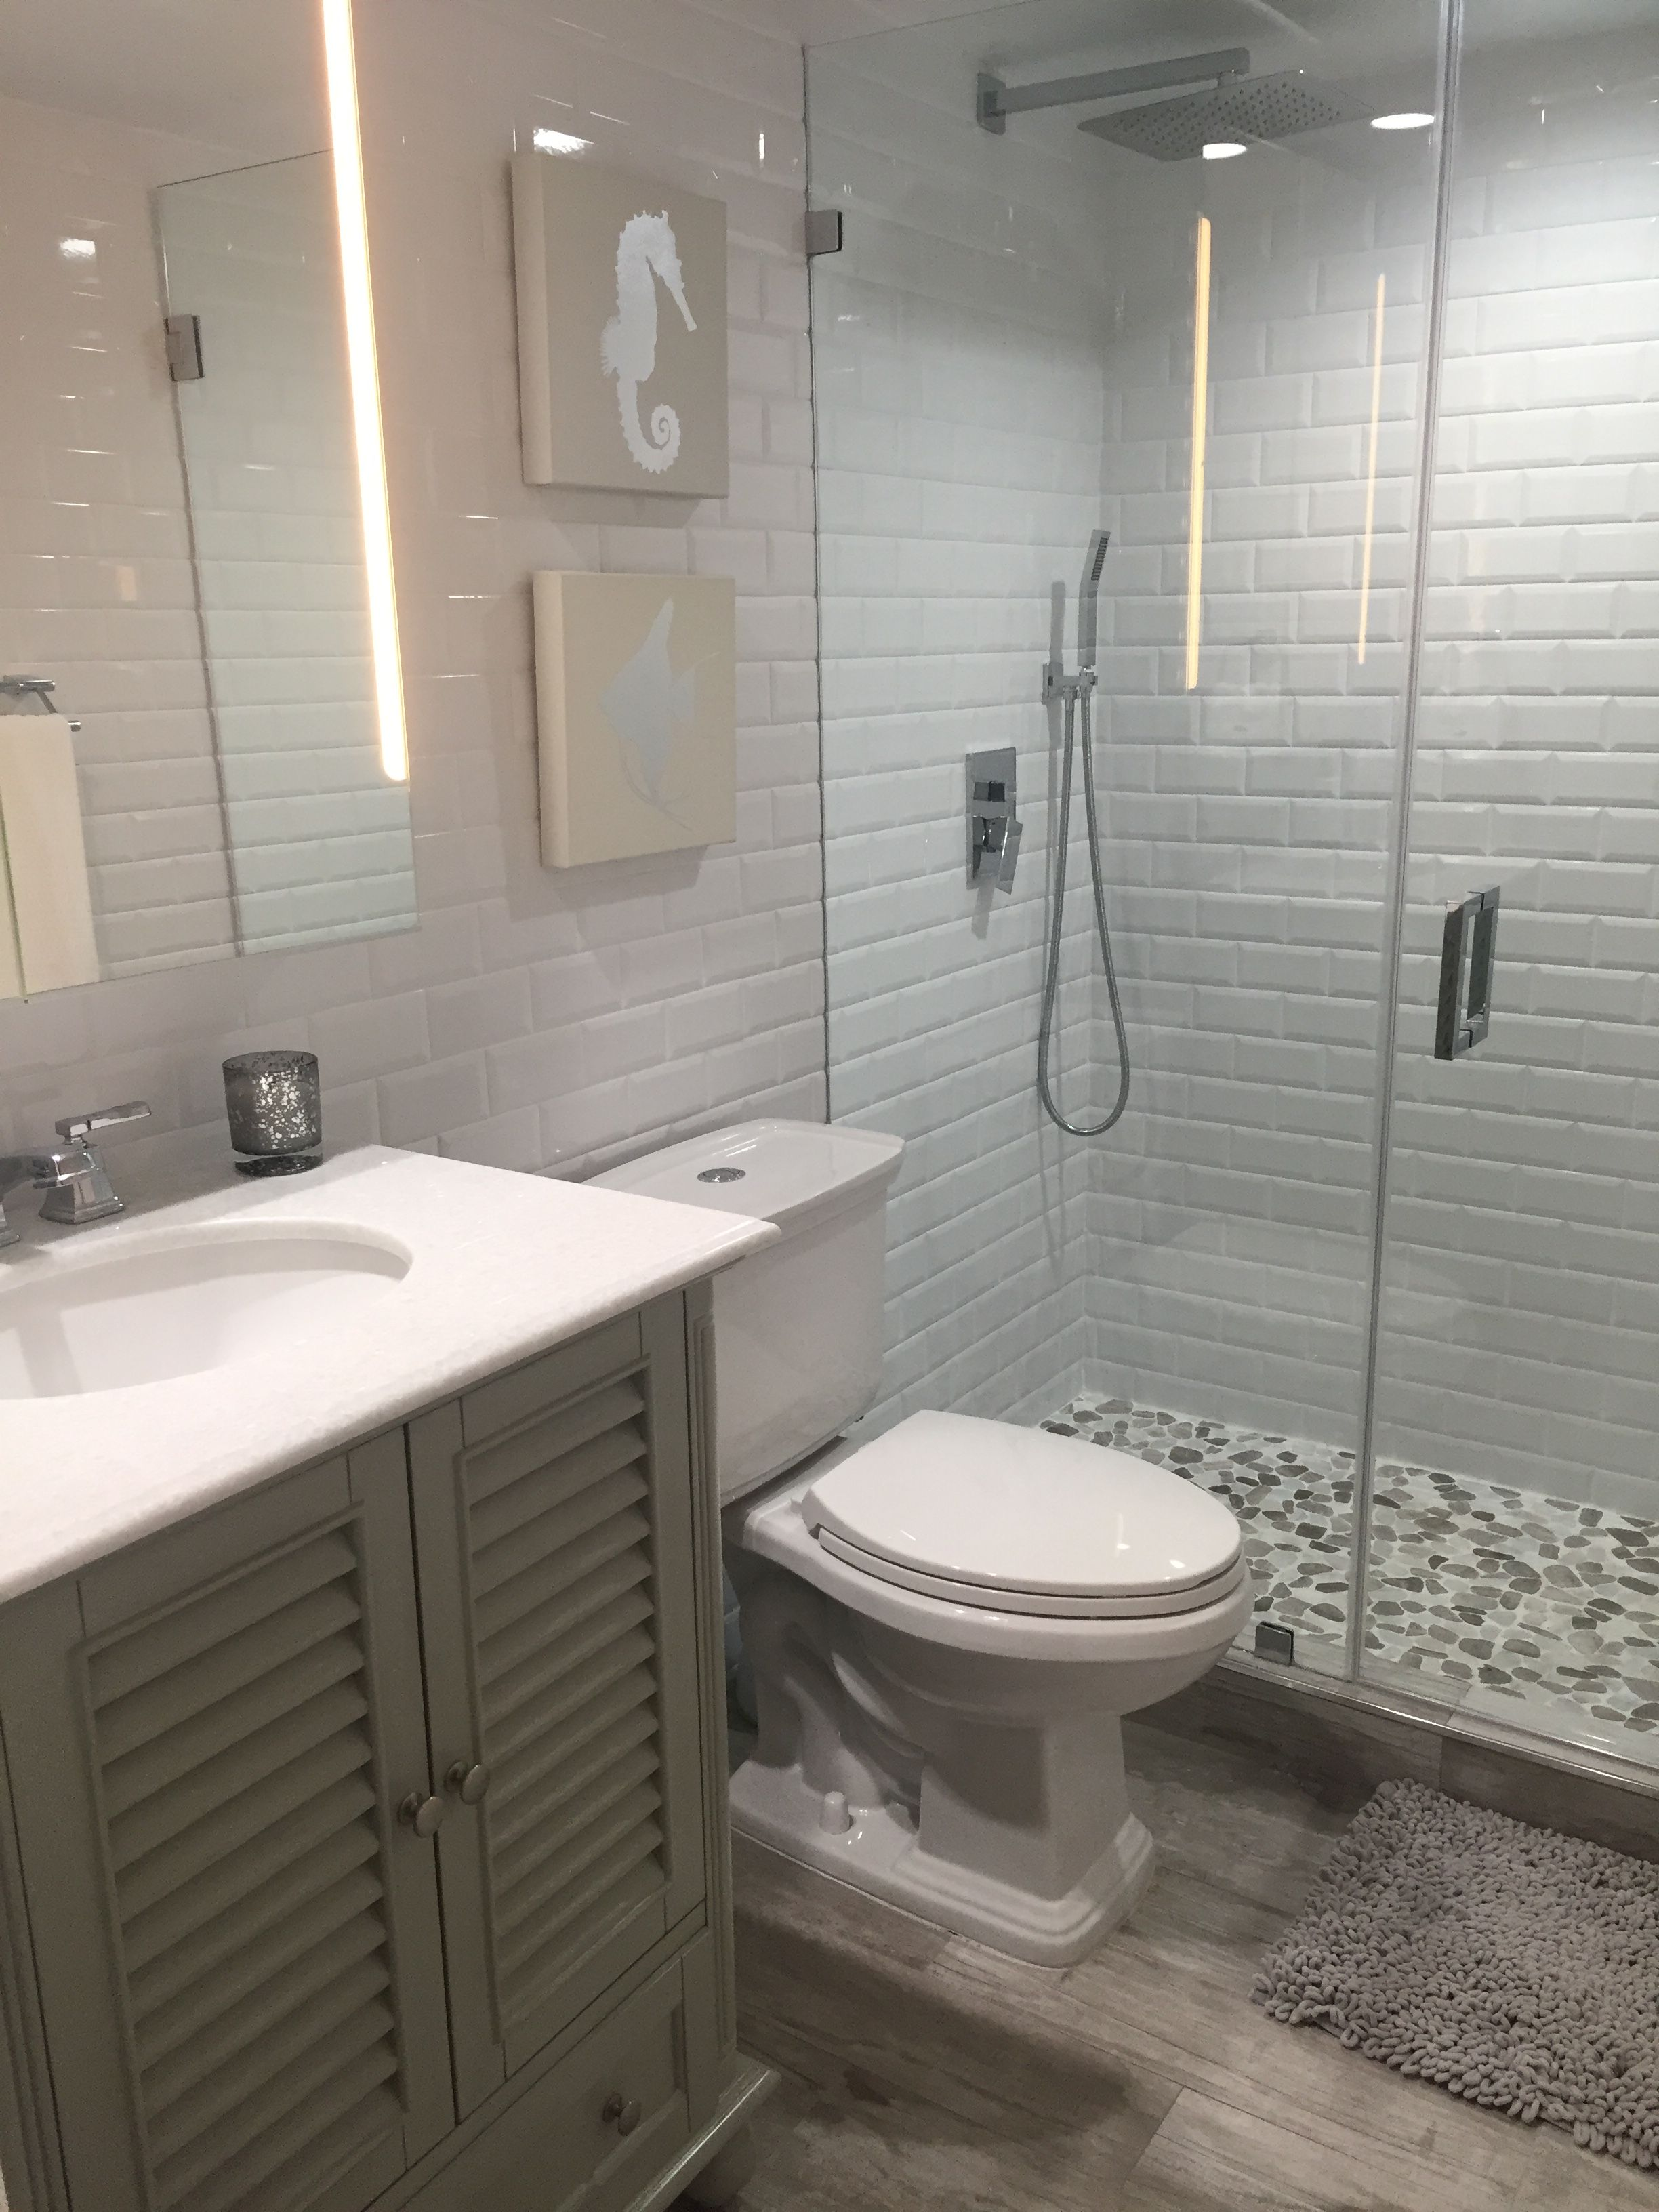 Spokane bathroom remodel contractors, Spokane bathroom remodeling, Spokane bathroom remodeling quote.